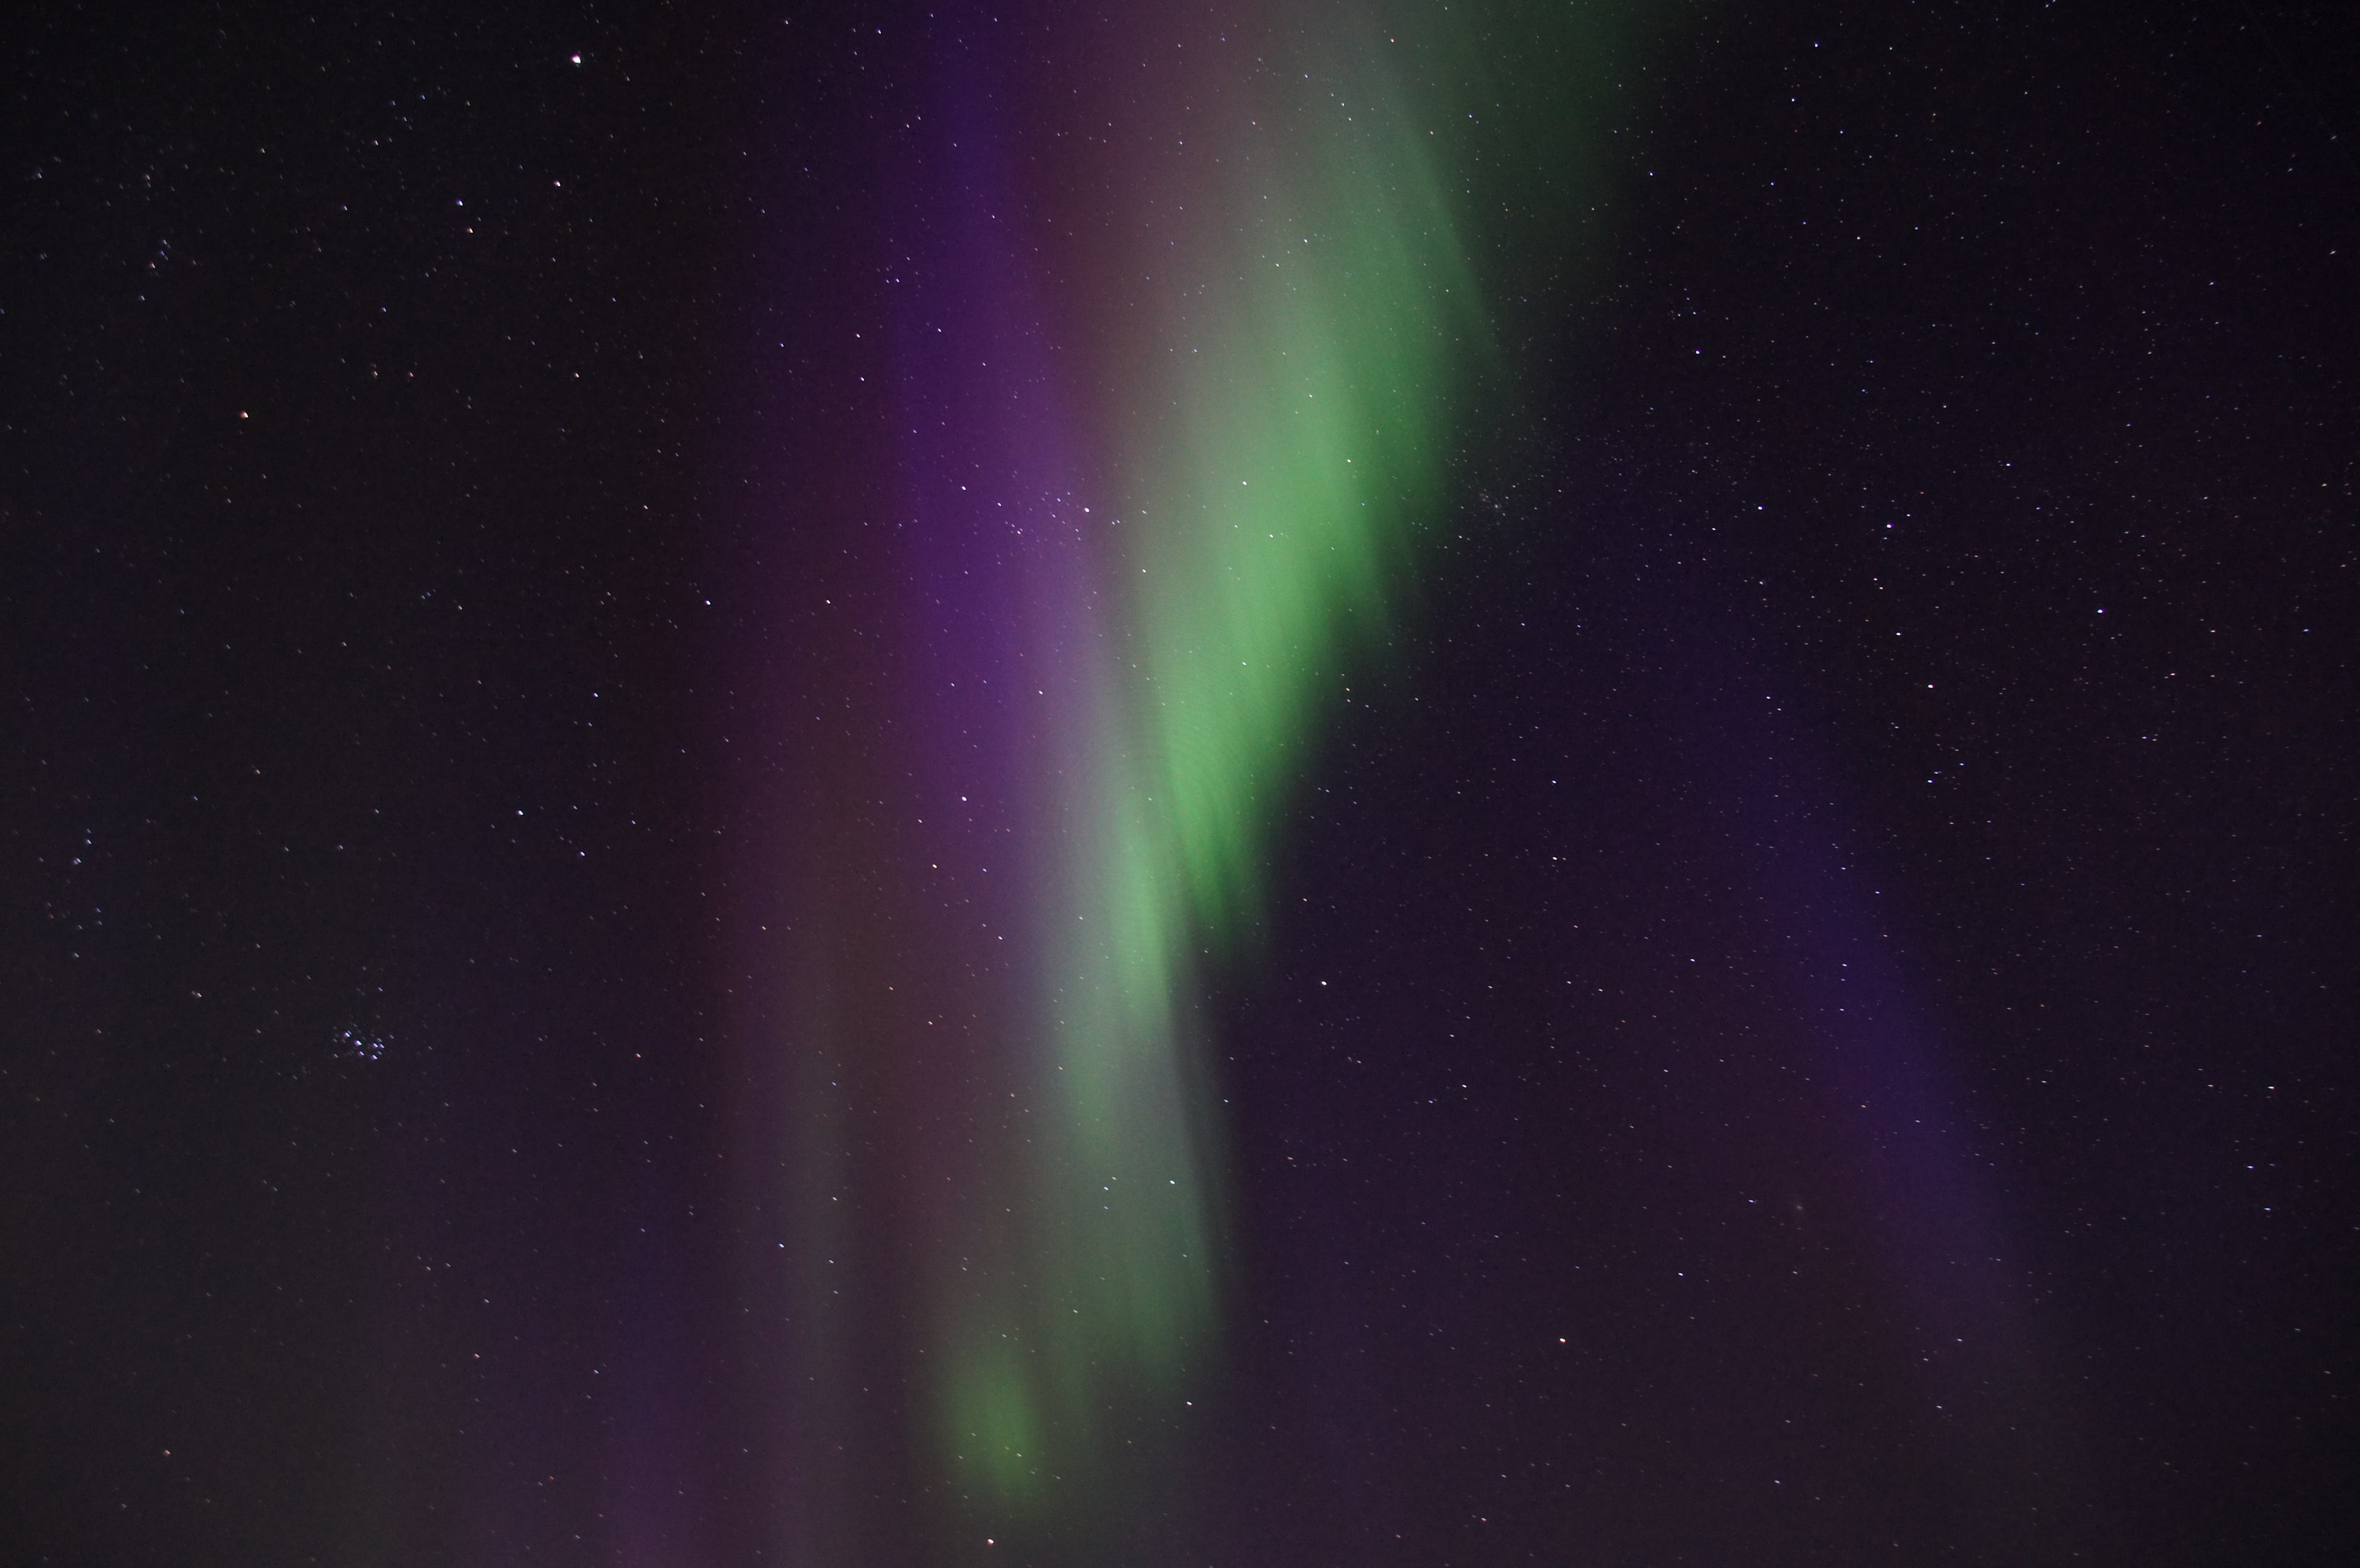 Free stock photo of winter, green, violet, aurora borealis